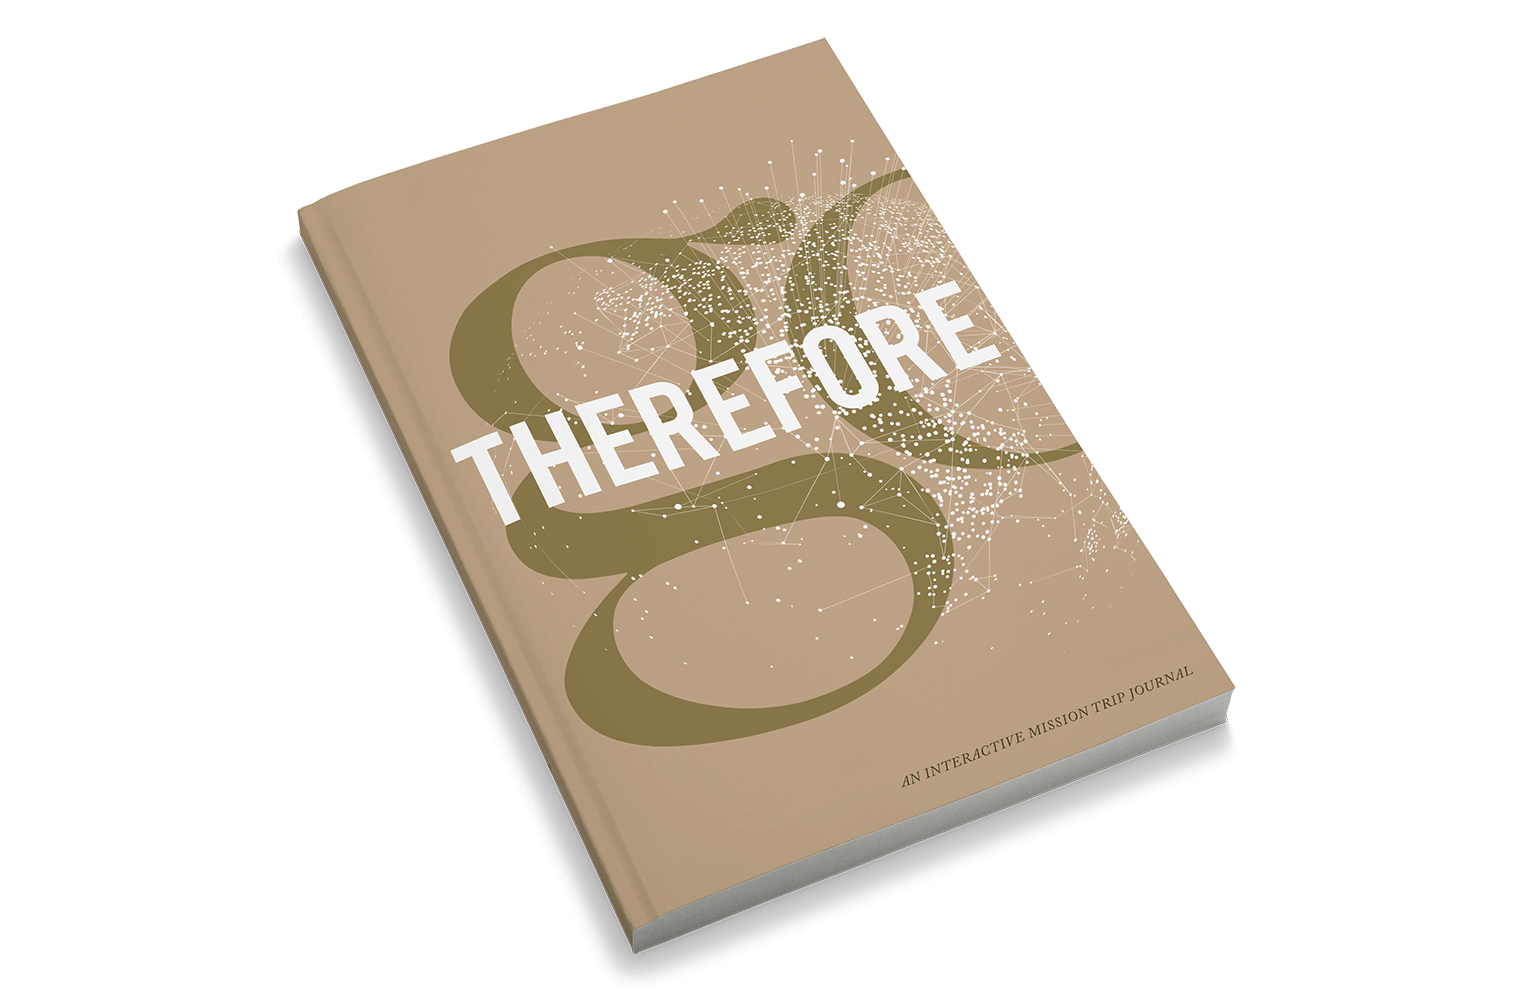 Therefore Go: An Interactive Mission Trip Journal